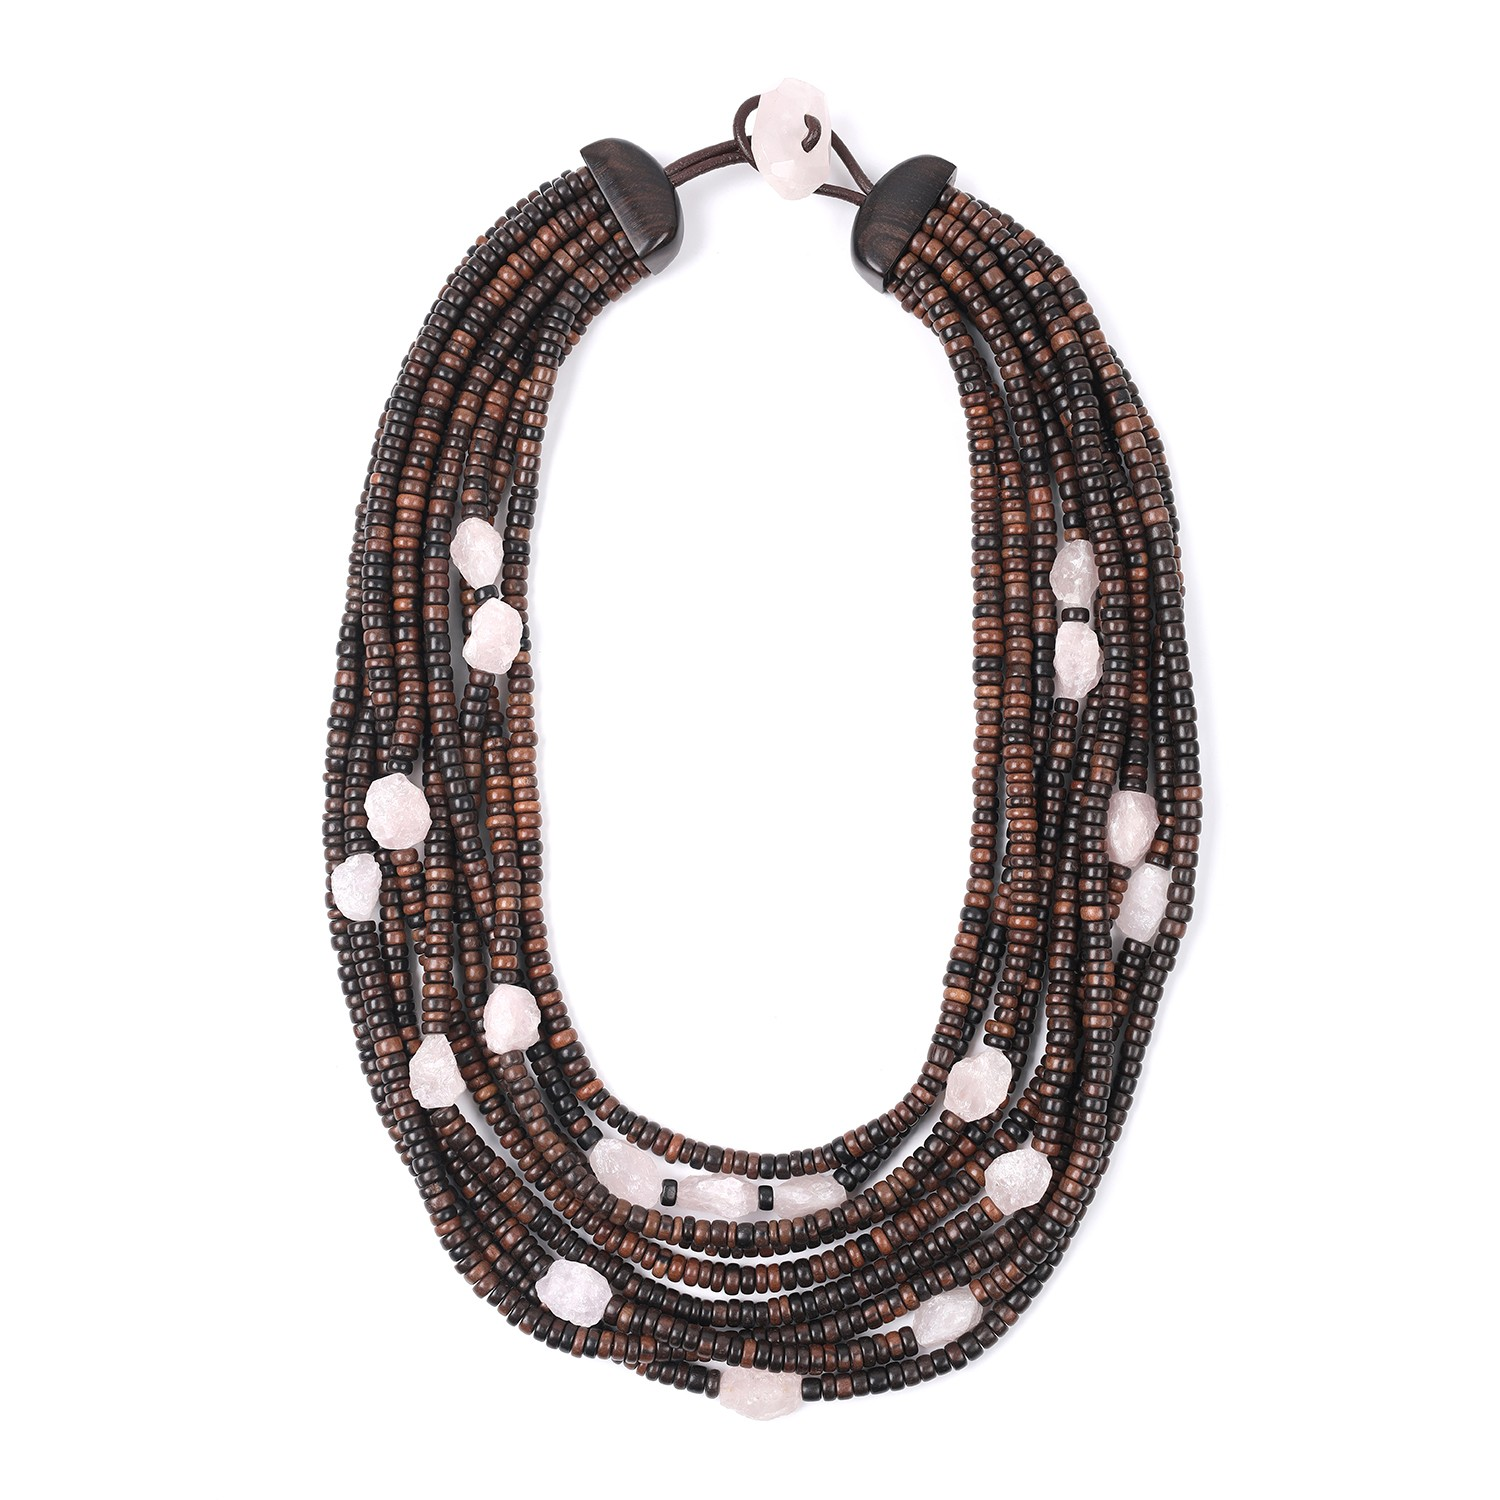 Necklace limited edition ebony & rose quartz